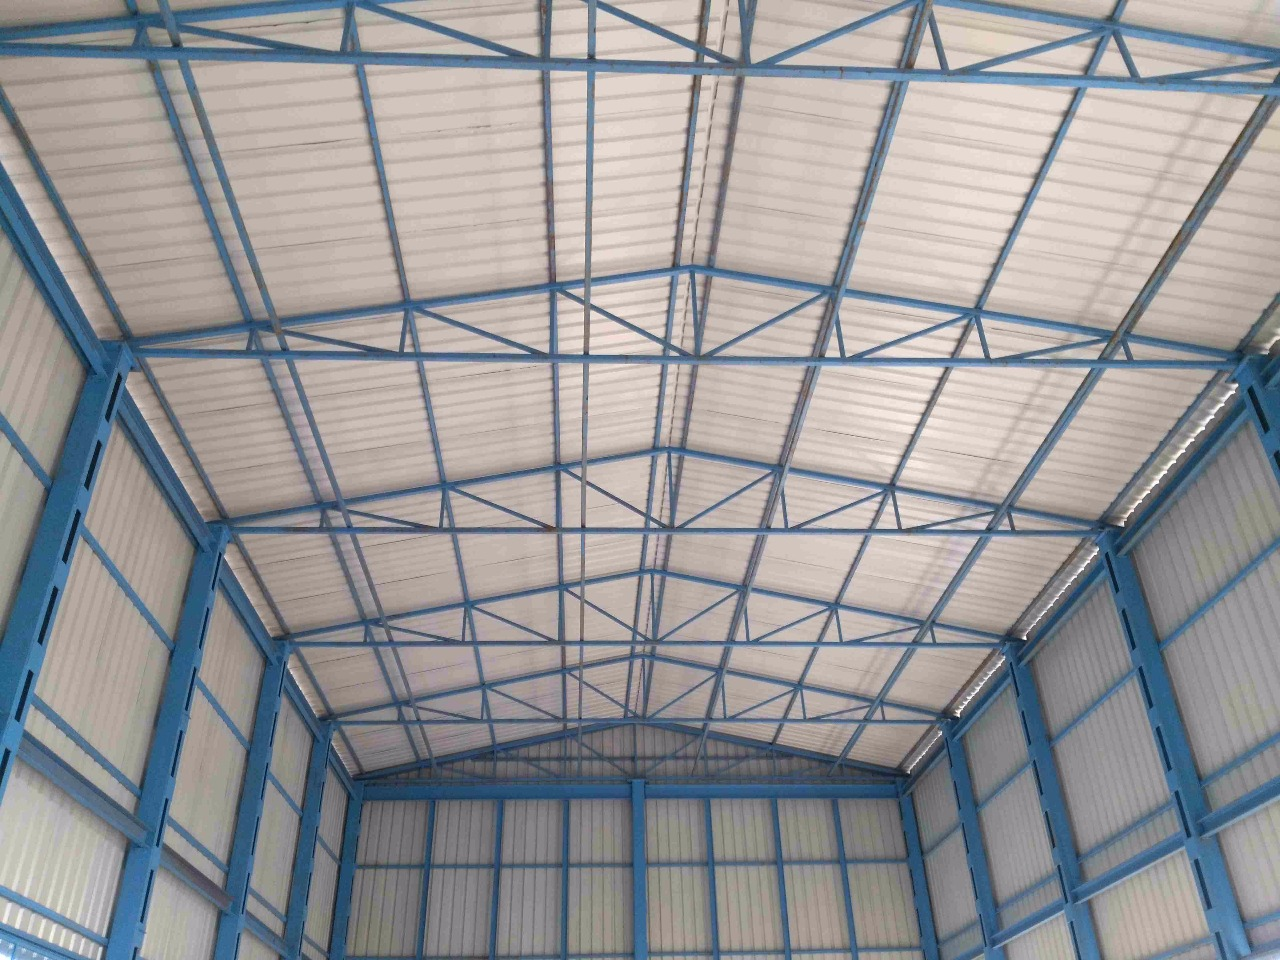 Vardhman-Roofing Fabrication